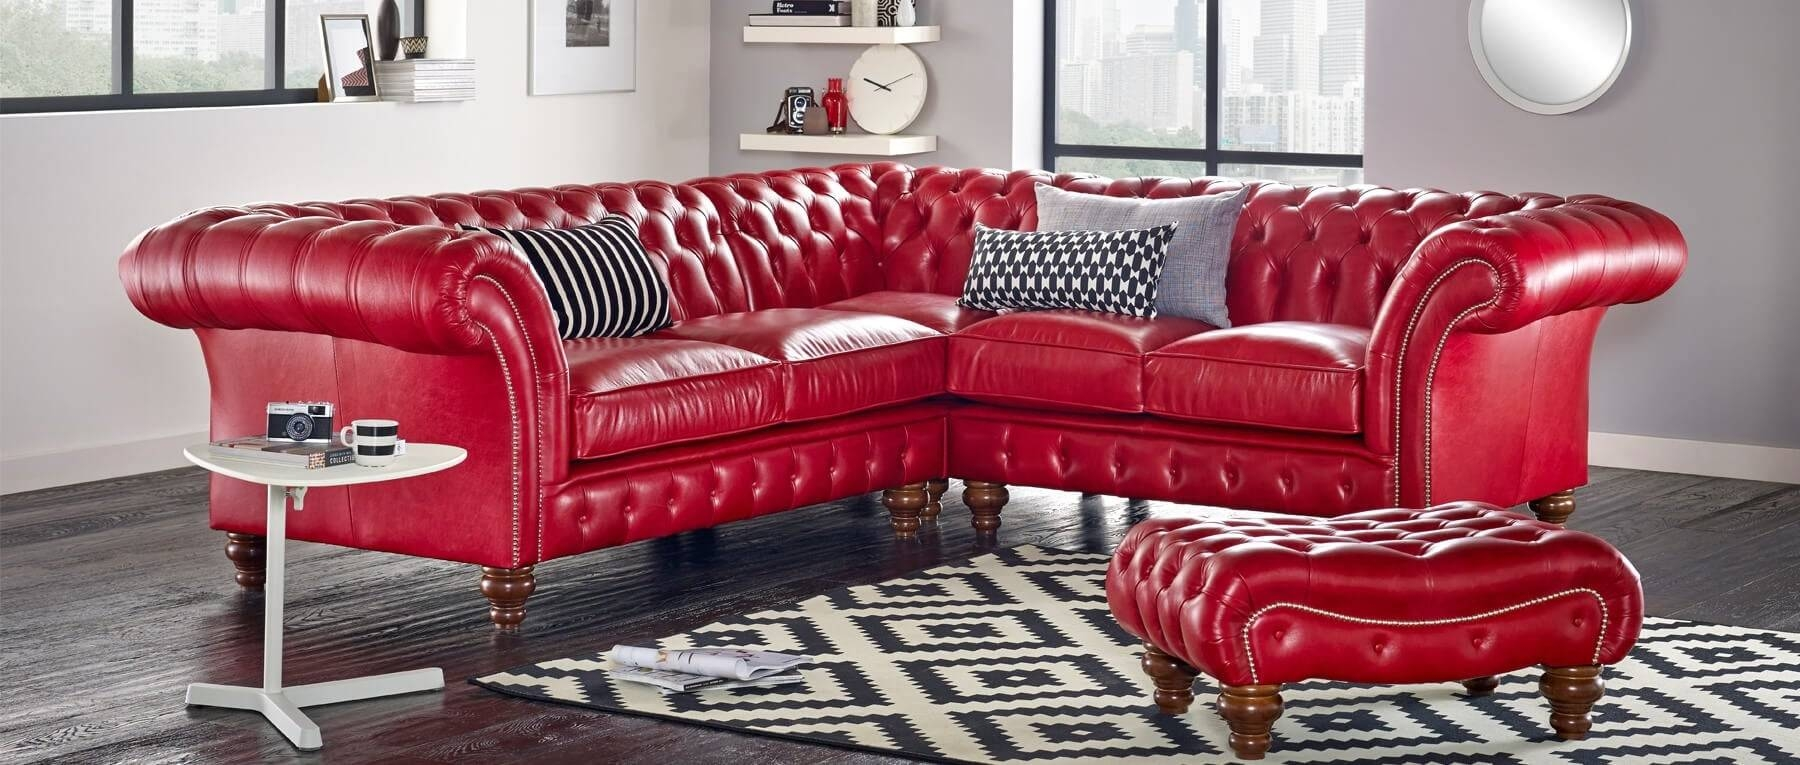 Bespoke Chesterfield Furniture Handmade In Britain | Sofassaxon pertaining to Chesterfield Sofas and Chairs (Image 1 of 15)